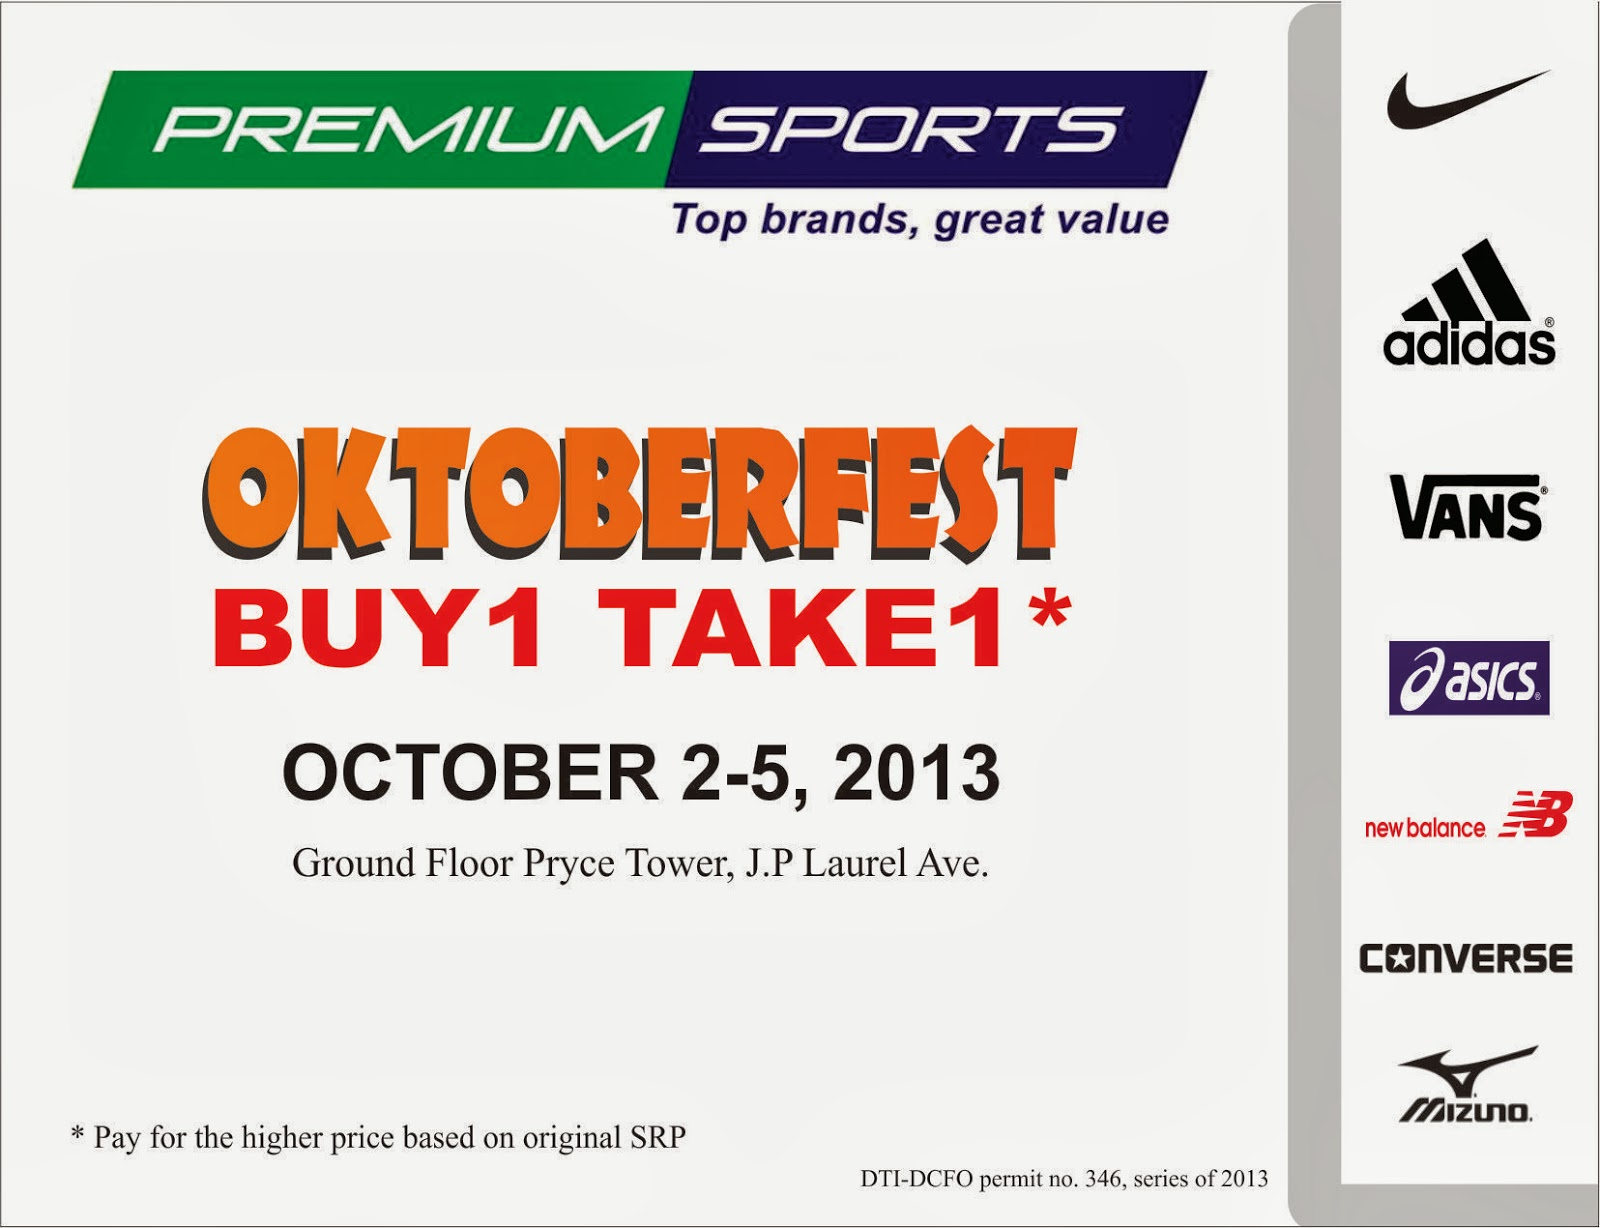 d i g g davao premium sports oktoberfest buy 1 take 1 october 2 5 2013 d i g g davao blogger